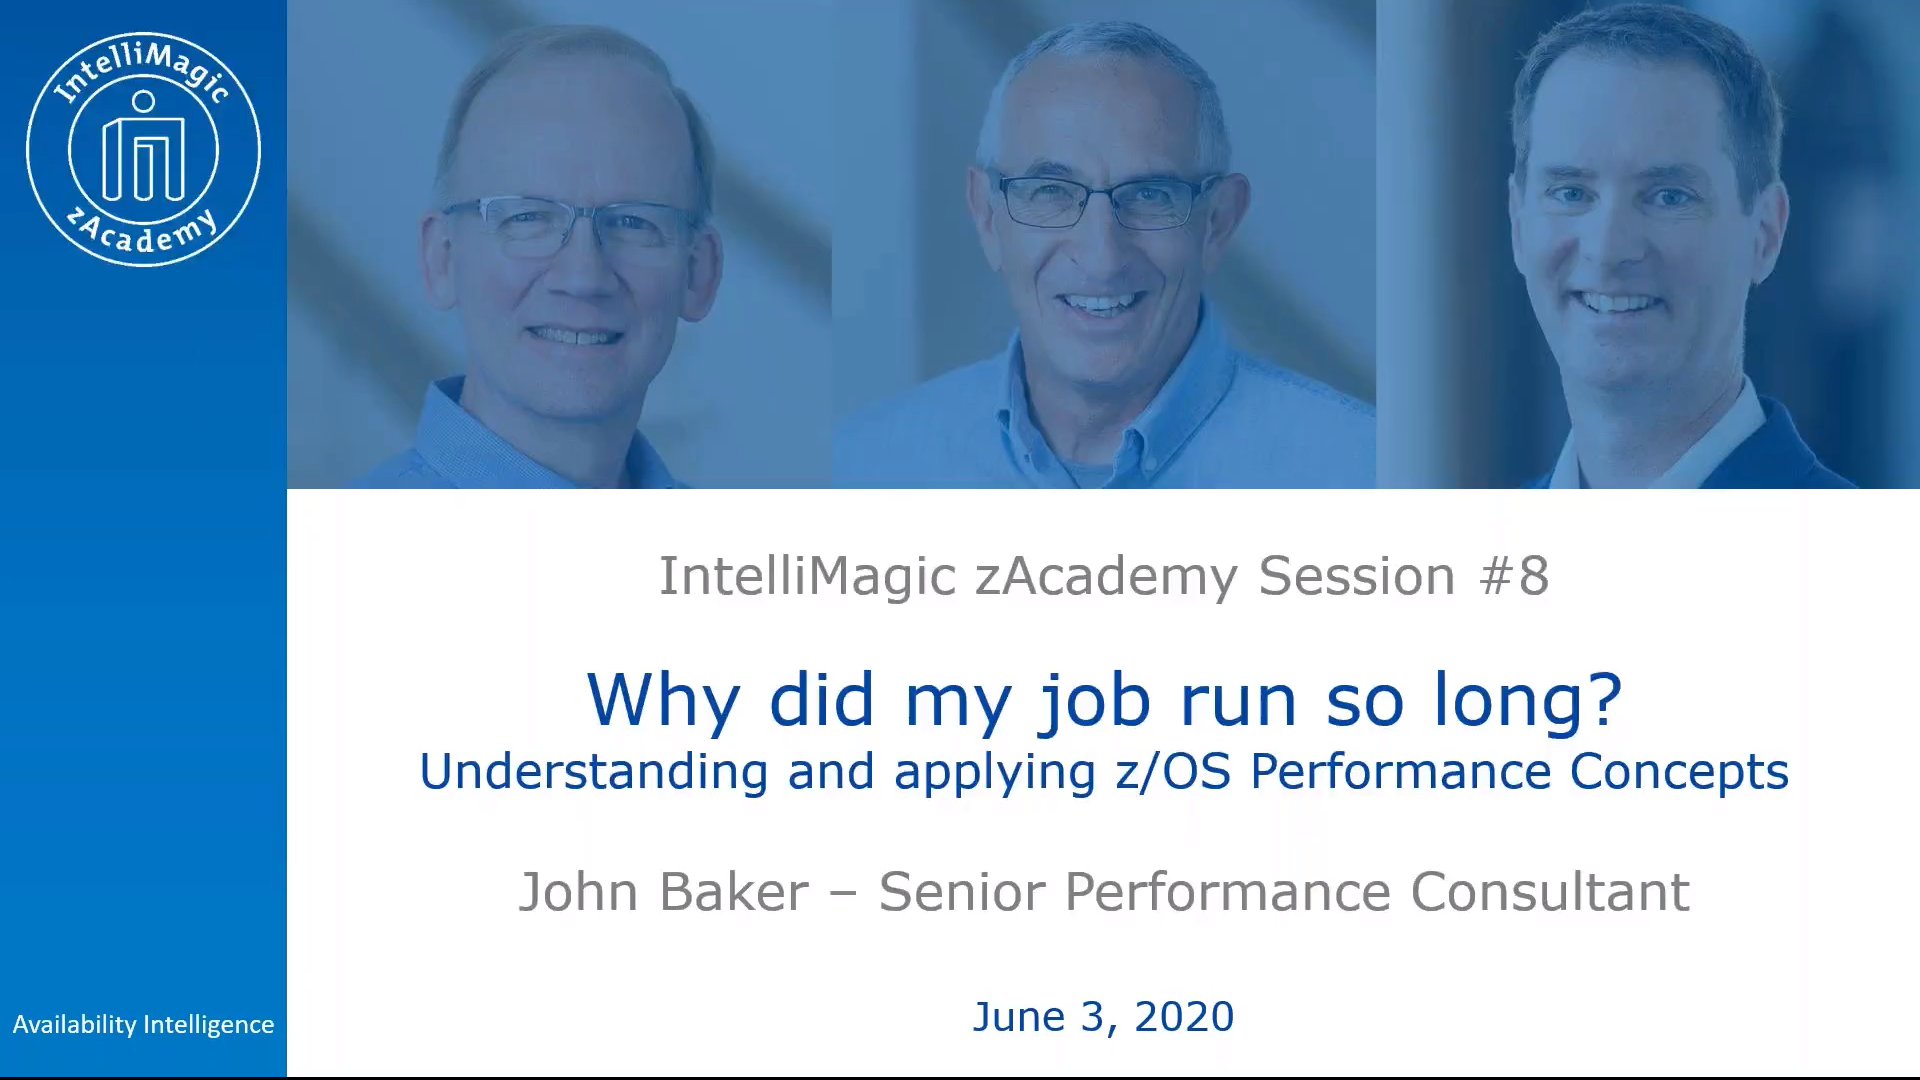 zAcademy: Why did my job run so long? Understanding and applying z/OS Performance Concepts